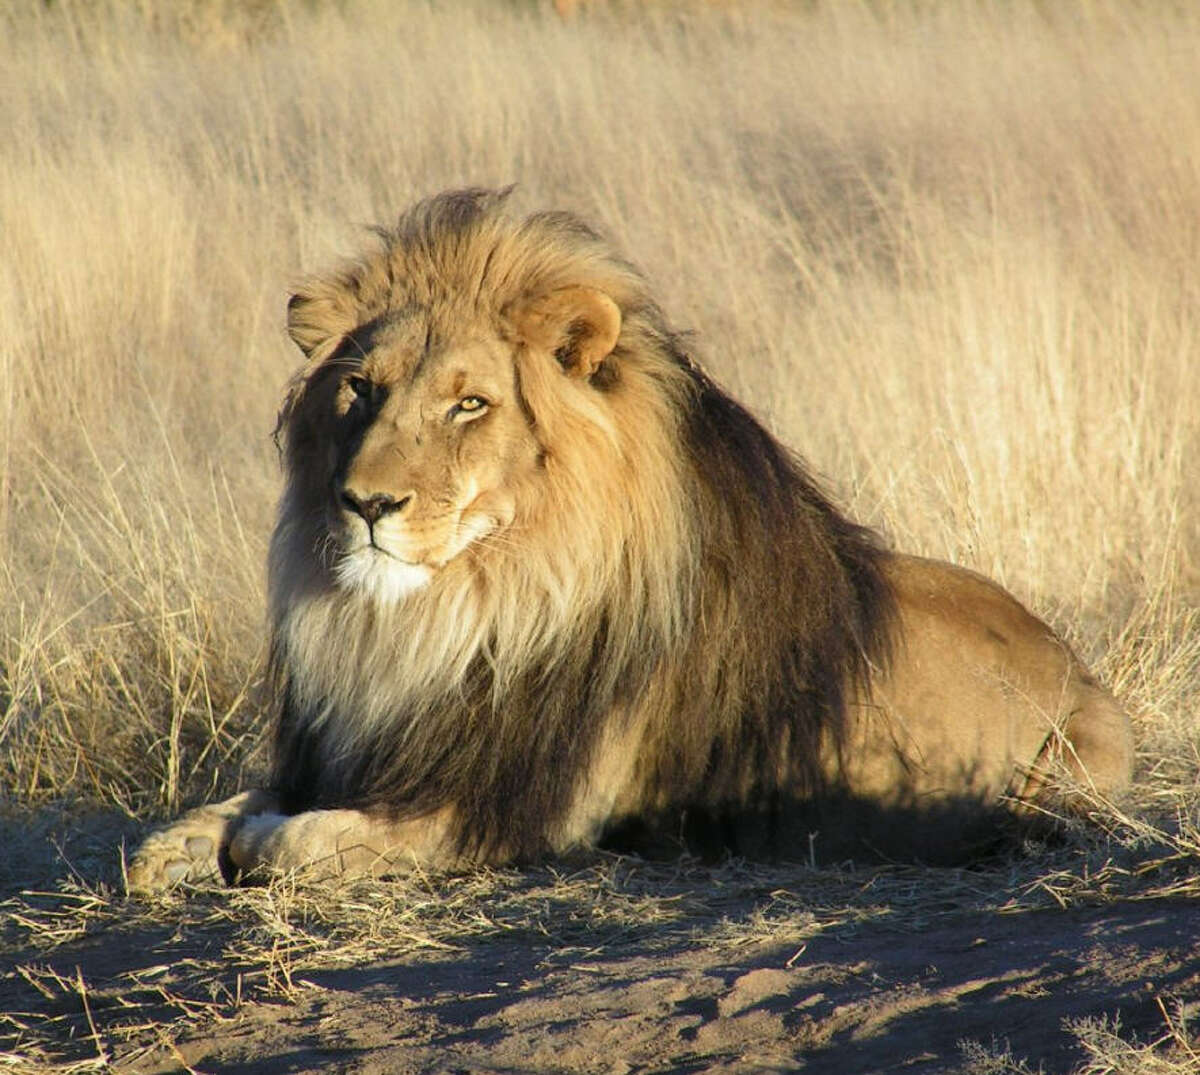 Lions, and tigers, and bears in Texas They may be the king of beasts, but lions aren't the most popular wild animal kept by owners in Texas. Click through to see the most popular dangerous wild animals registered by owners in Texas and where they are.